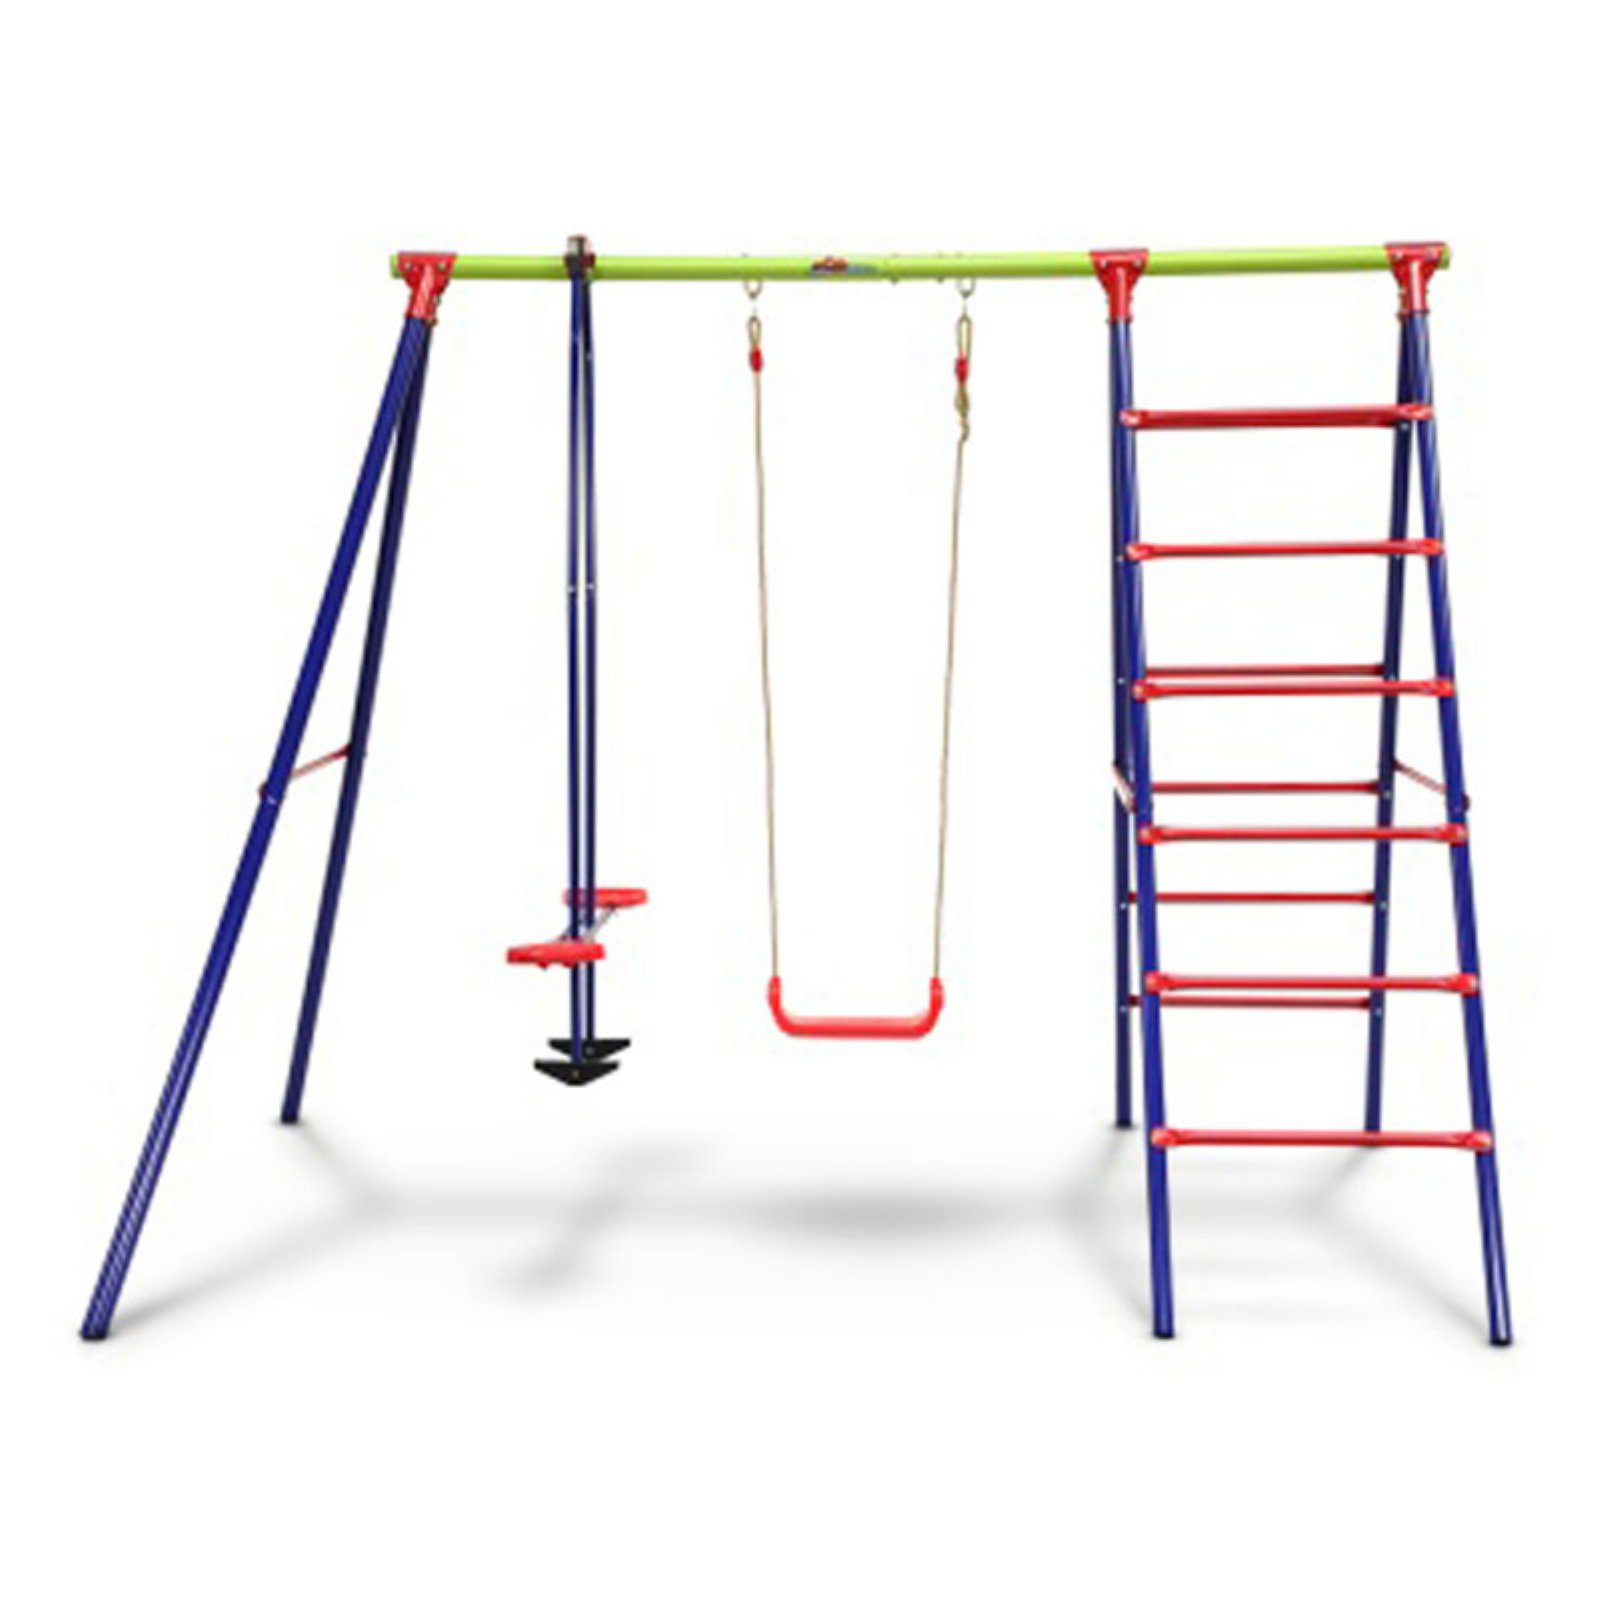 Outward Play Burke Swing Set and Play Center with Seasaw Swing and Climbing Ladder